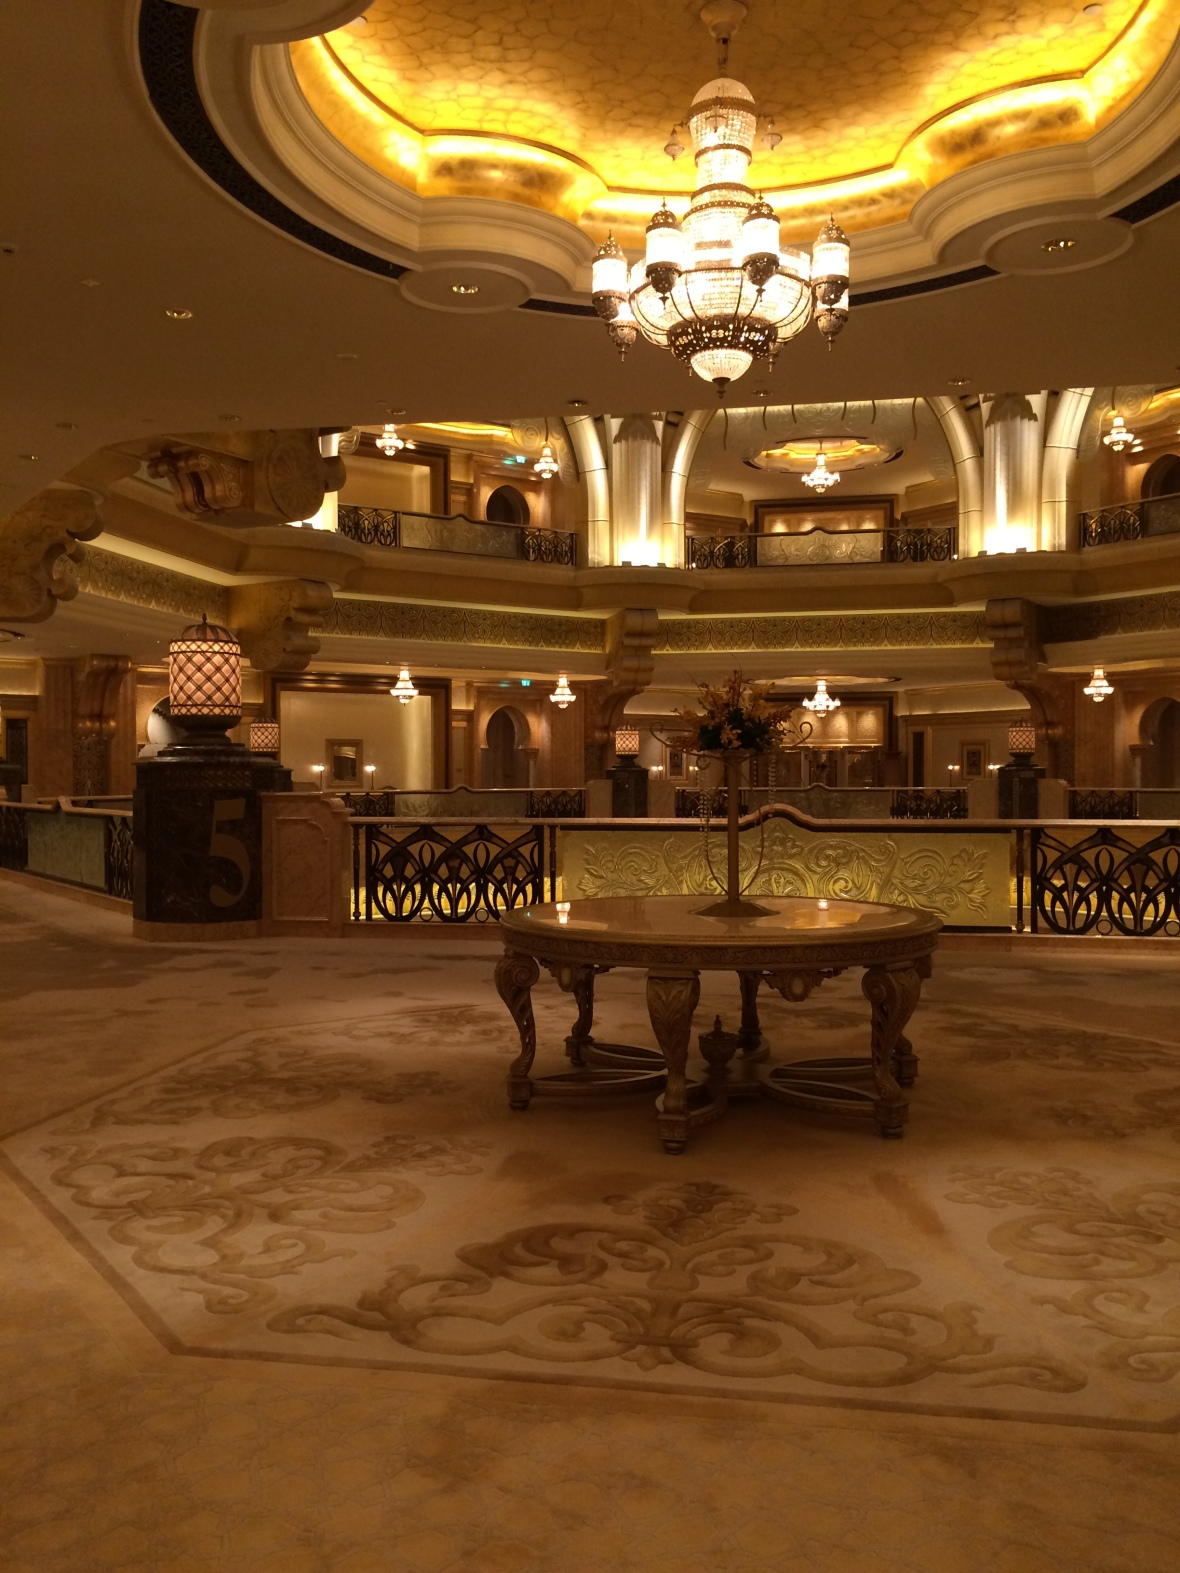 Second Floor, Emirates Palace Hotel, Abu Dhabi, UAE